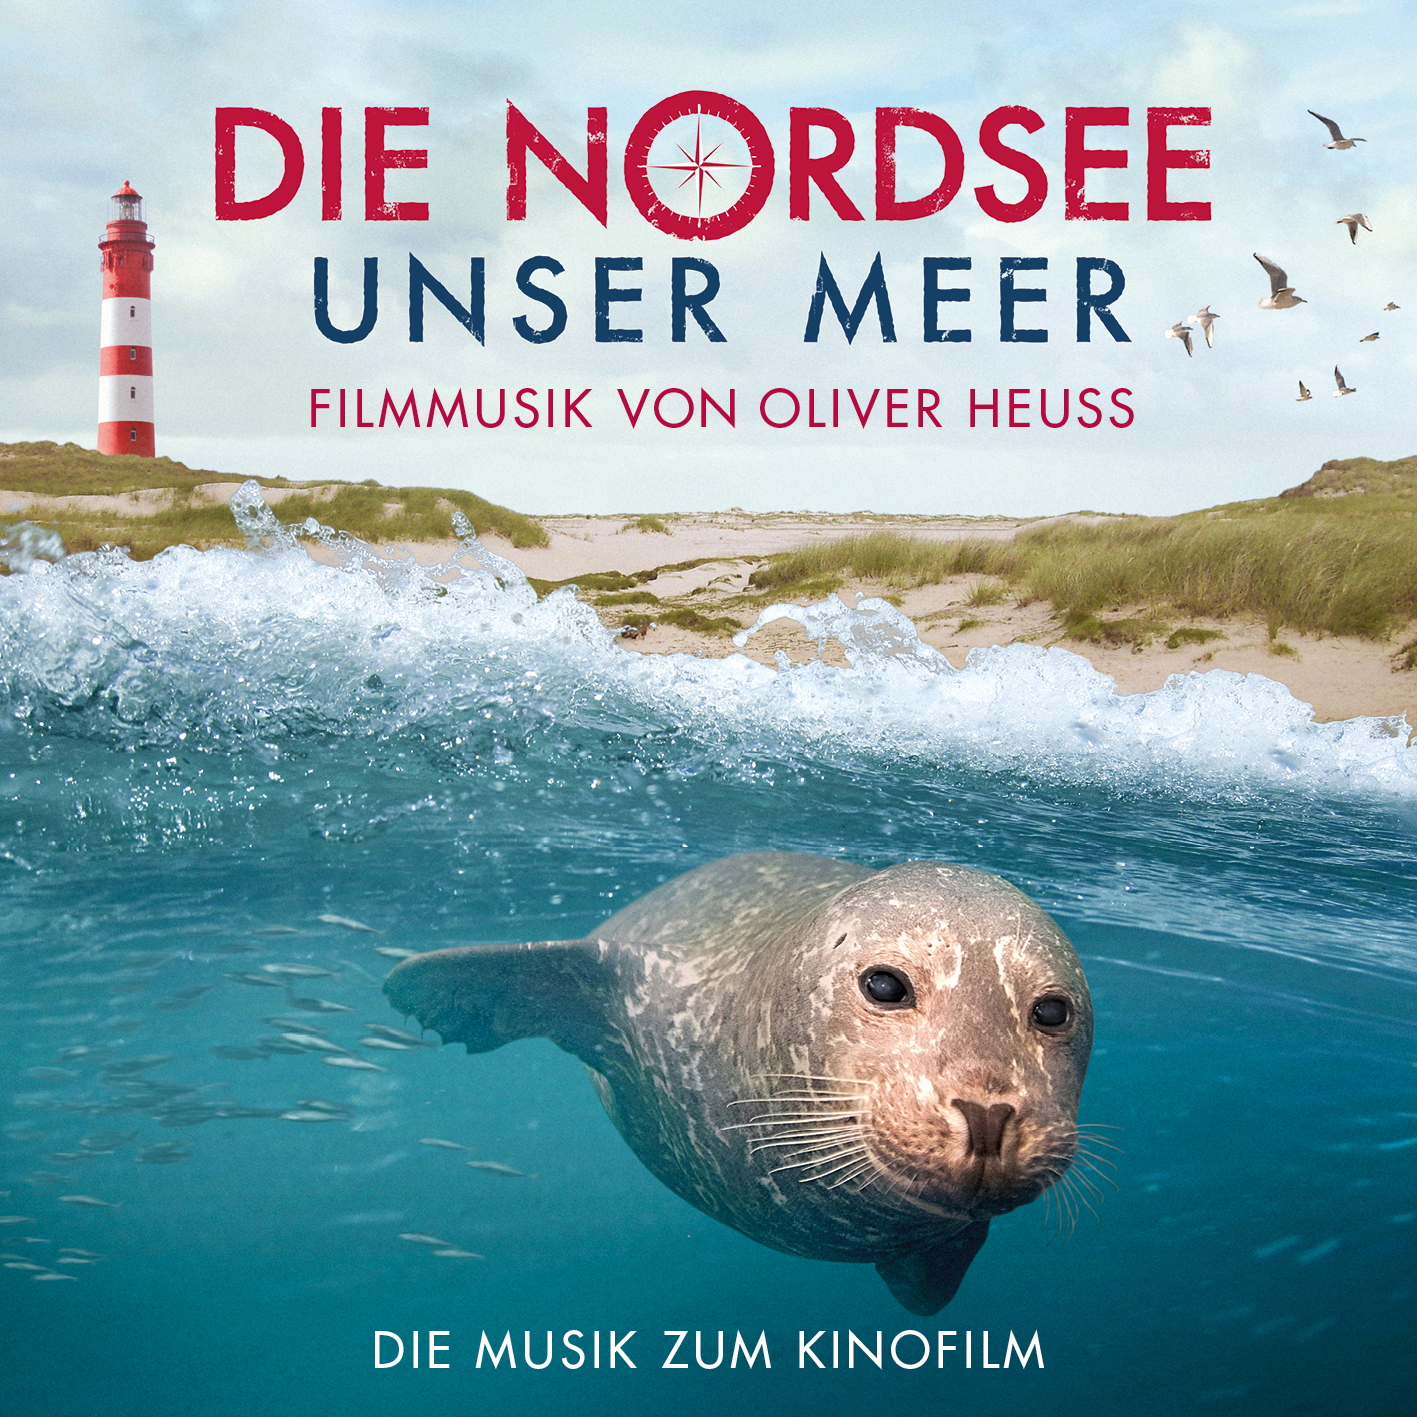 DieNordsee_CD_Cover